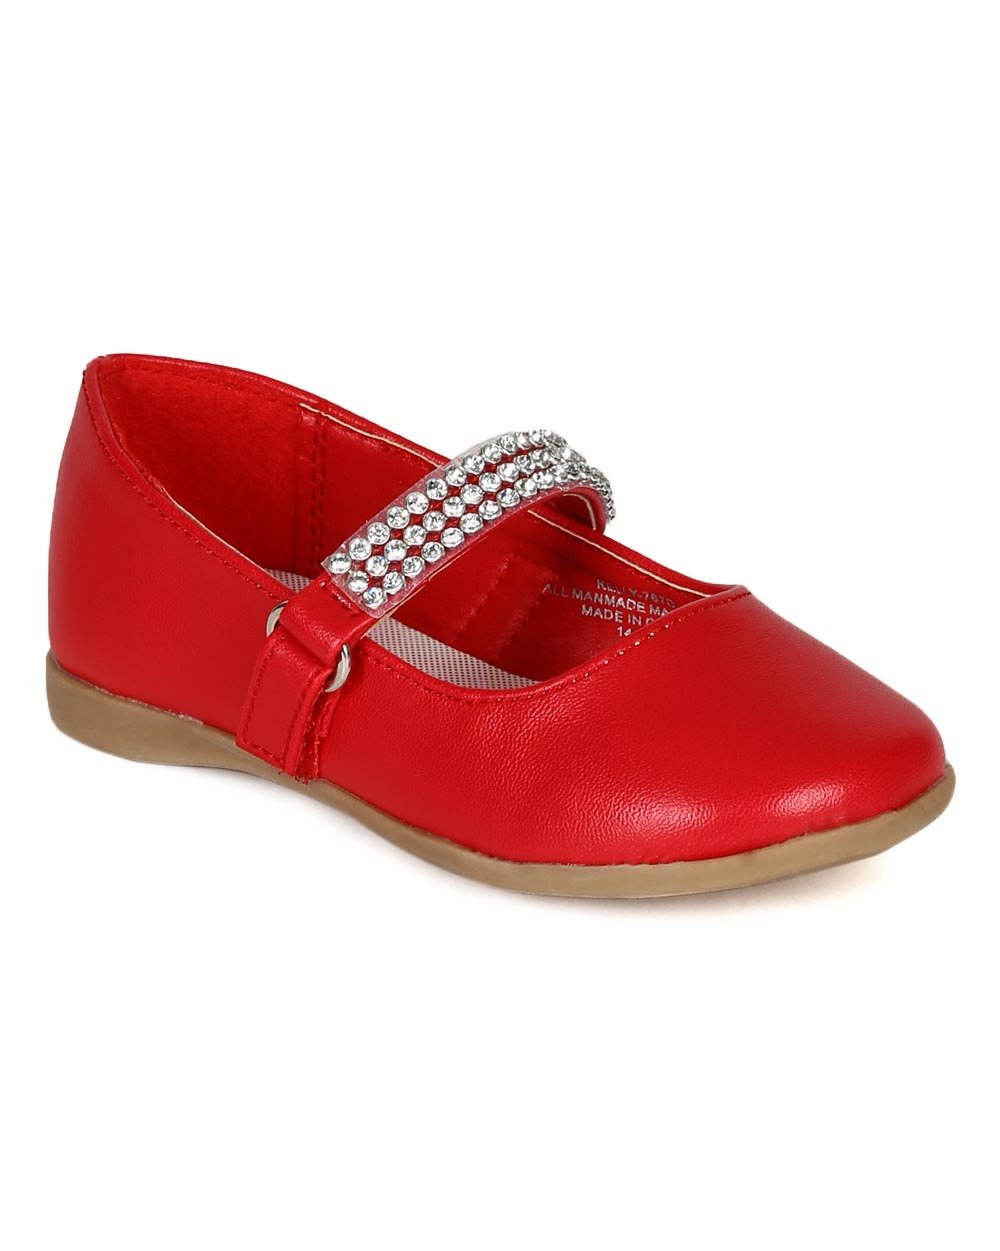 Leatherette Round Toe Rhinestone Mary Jane Ballerina Flat (Toddler/Little Girl) CA05 - Red Leatherette (Size: Toddler 4)